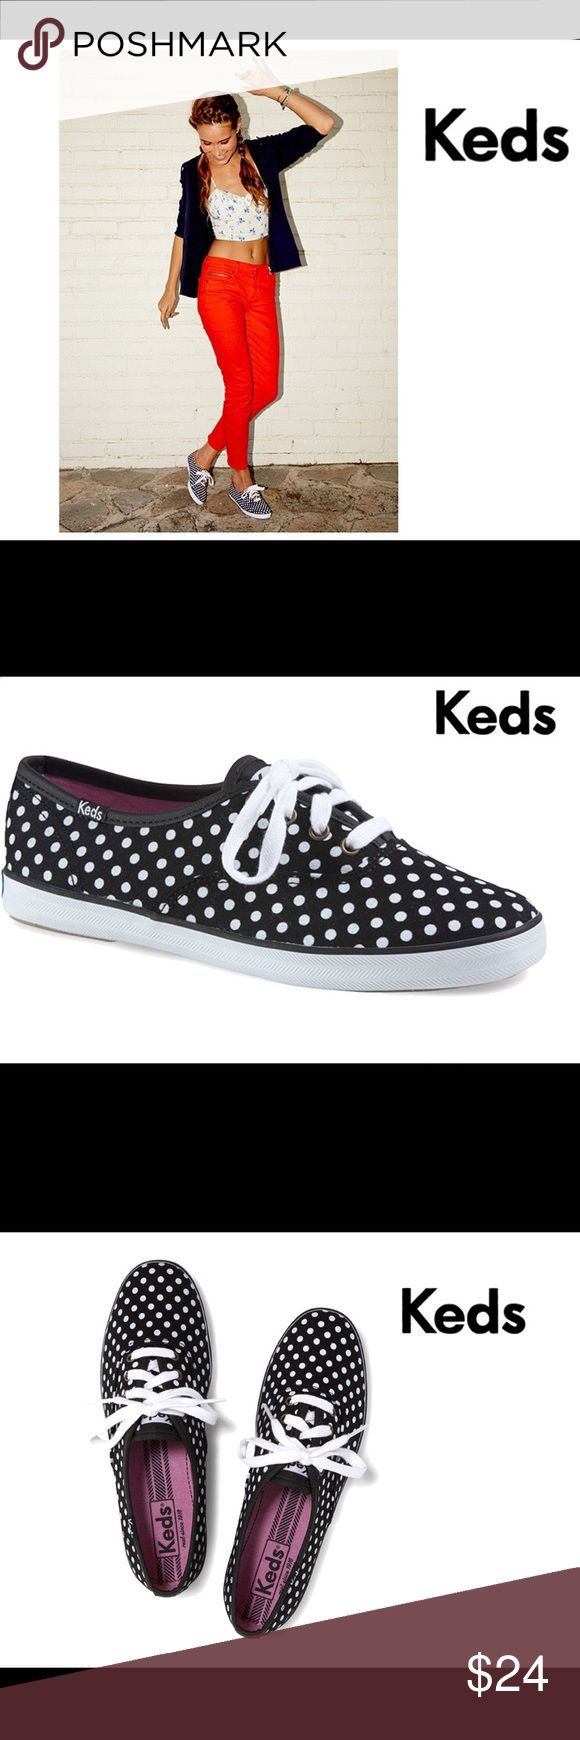 KEDS Champion Dot Black & White Shoes 10 NWOB KEDS Brand Champion Dot Style Women's Size 10 Black & White Shoes. Features Pink Cushioned Interior with Arch Support. White Laces. BRAND NEW WITHOUT BOX. Bundle & Save On Shipping. KEDS Shoes Sneakers